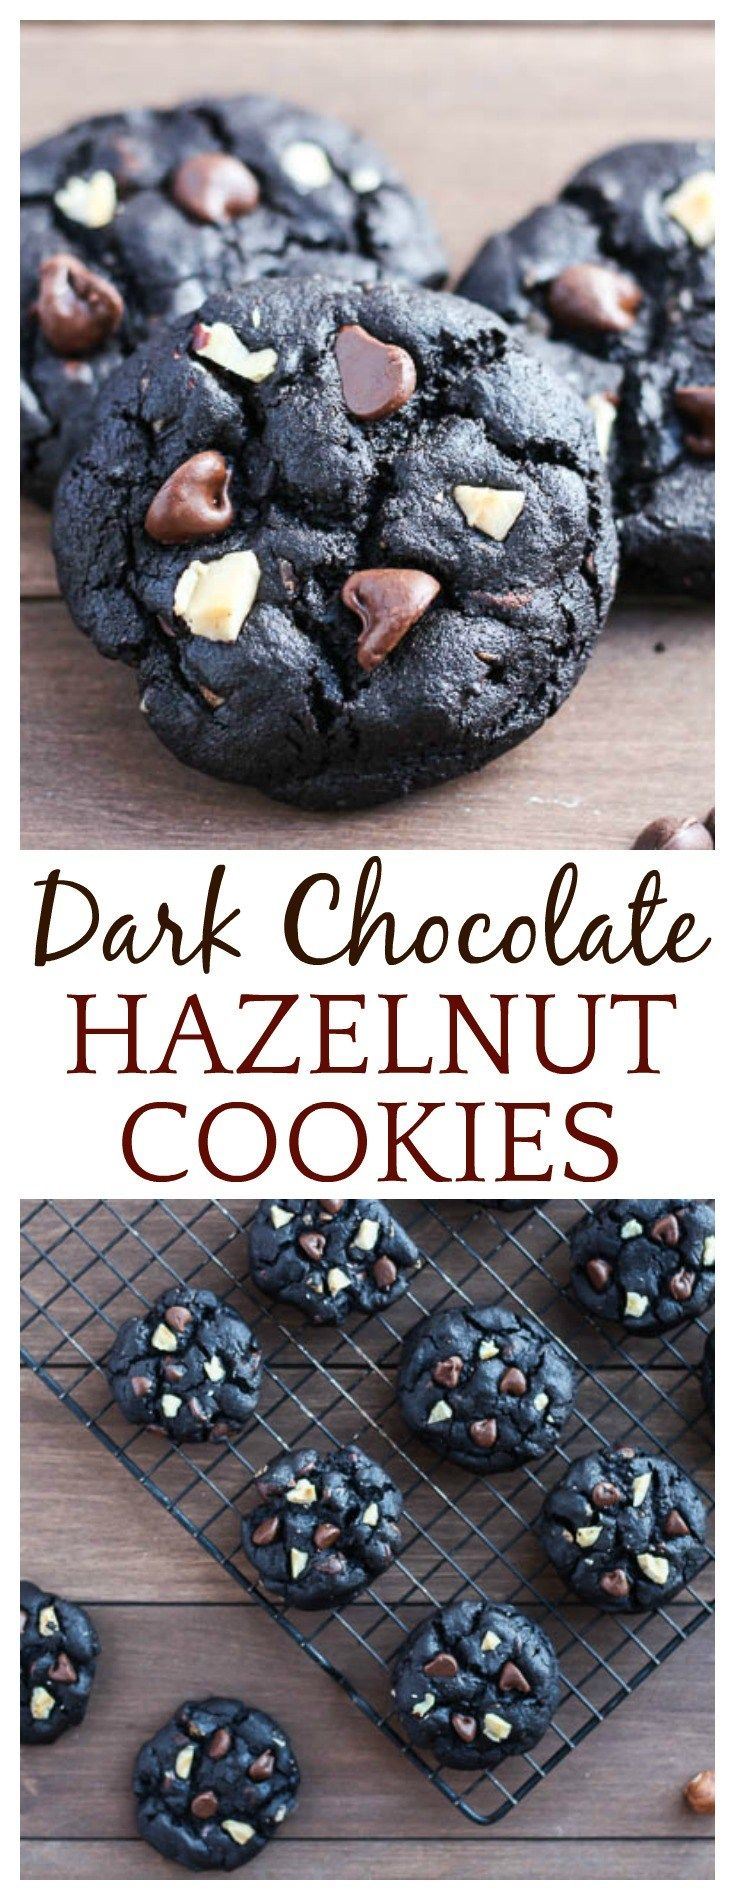 Loaded with rich chocolate flavors and chopped hazelnuts, these Dark Chocolate Hazelnut Cookies are delicious without being overly sweet! They are the perfect cookie to share with loved ones his holiday season! AD #bakesgiving #cookies #hazelnuts #dessert #darkchocolatecookies